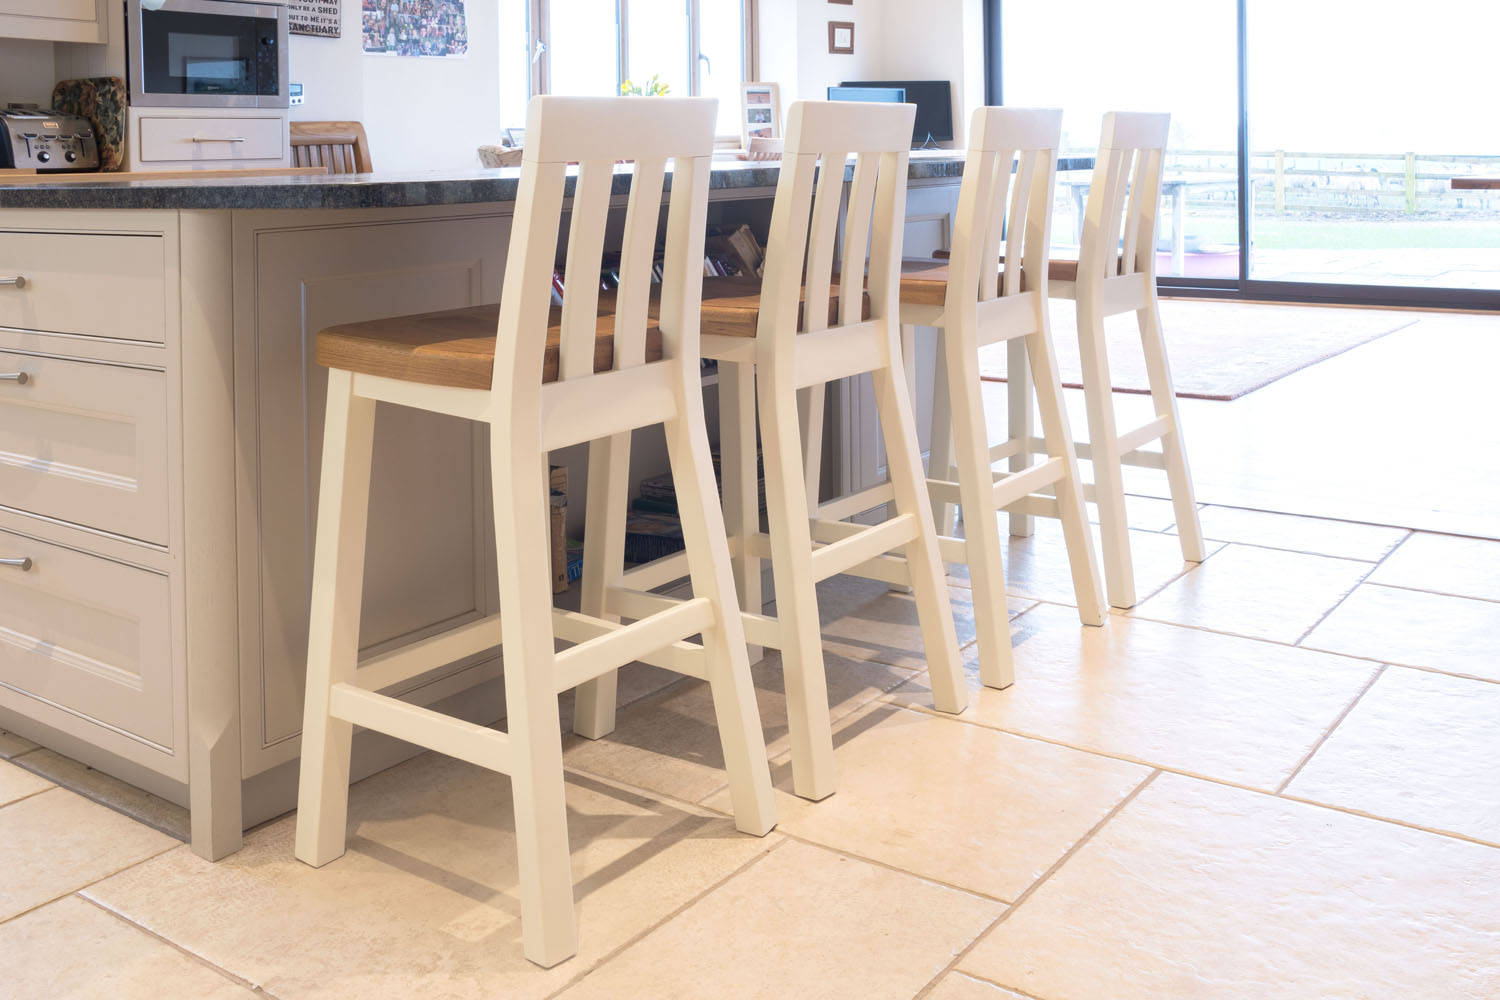 Billy cream painted oak bar stool from Top Furniture